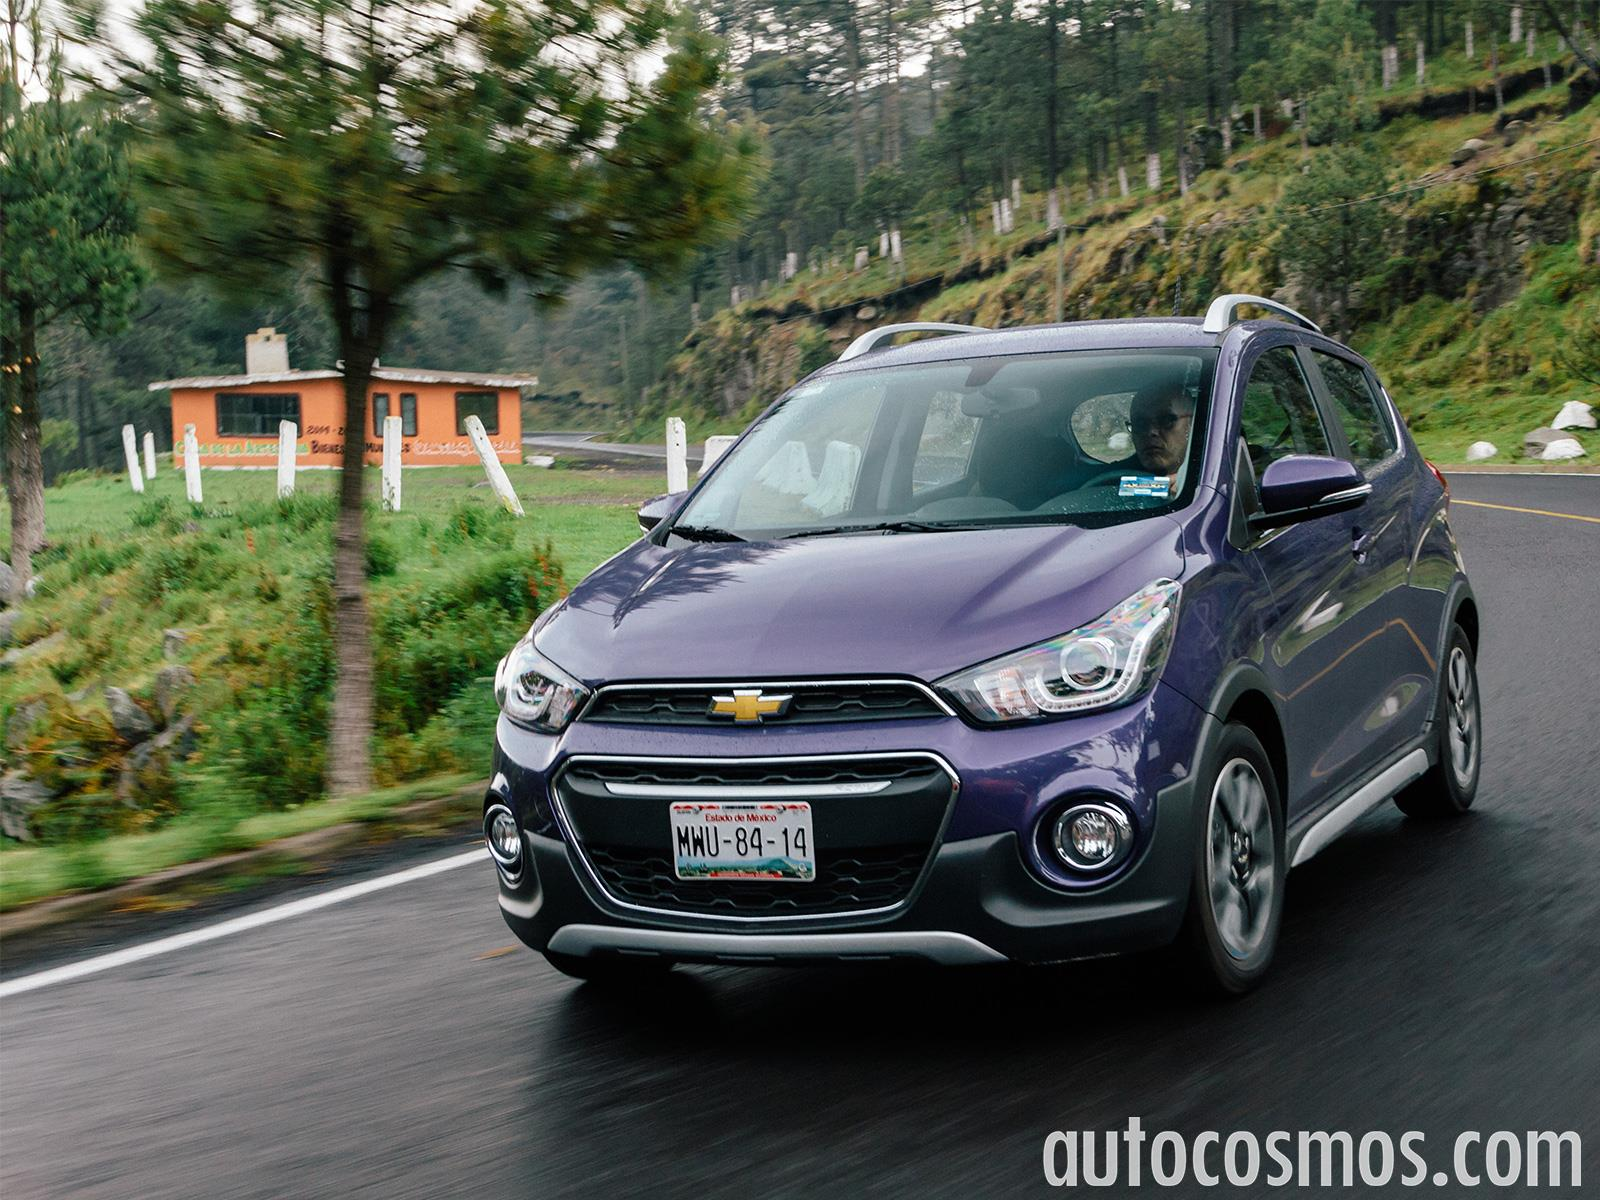 183435803 together with Ever seen an 8000 horsepower engine furthermore 2015 furthermore Chevrolet Hatchbacks besides 2013 Renault Scenic As Well As Grand Scenic Revealed. on toyota sonic car